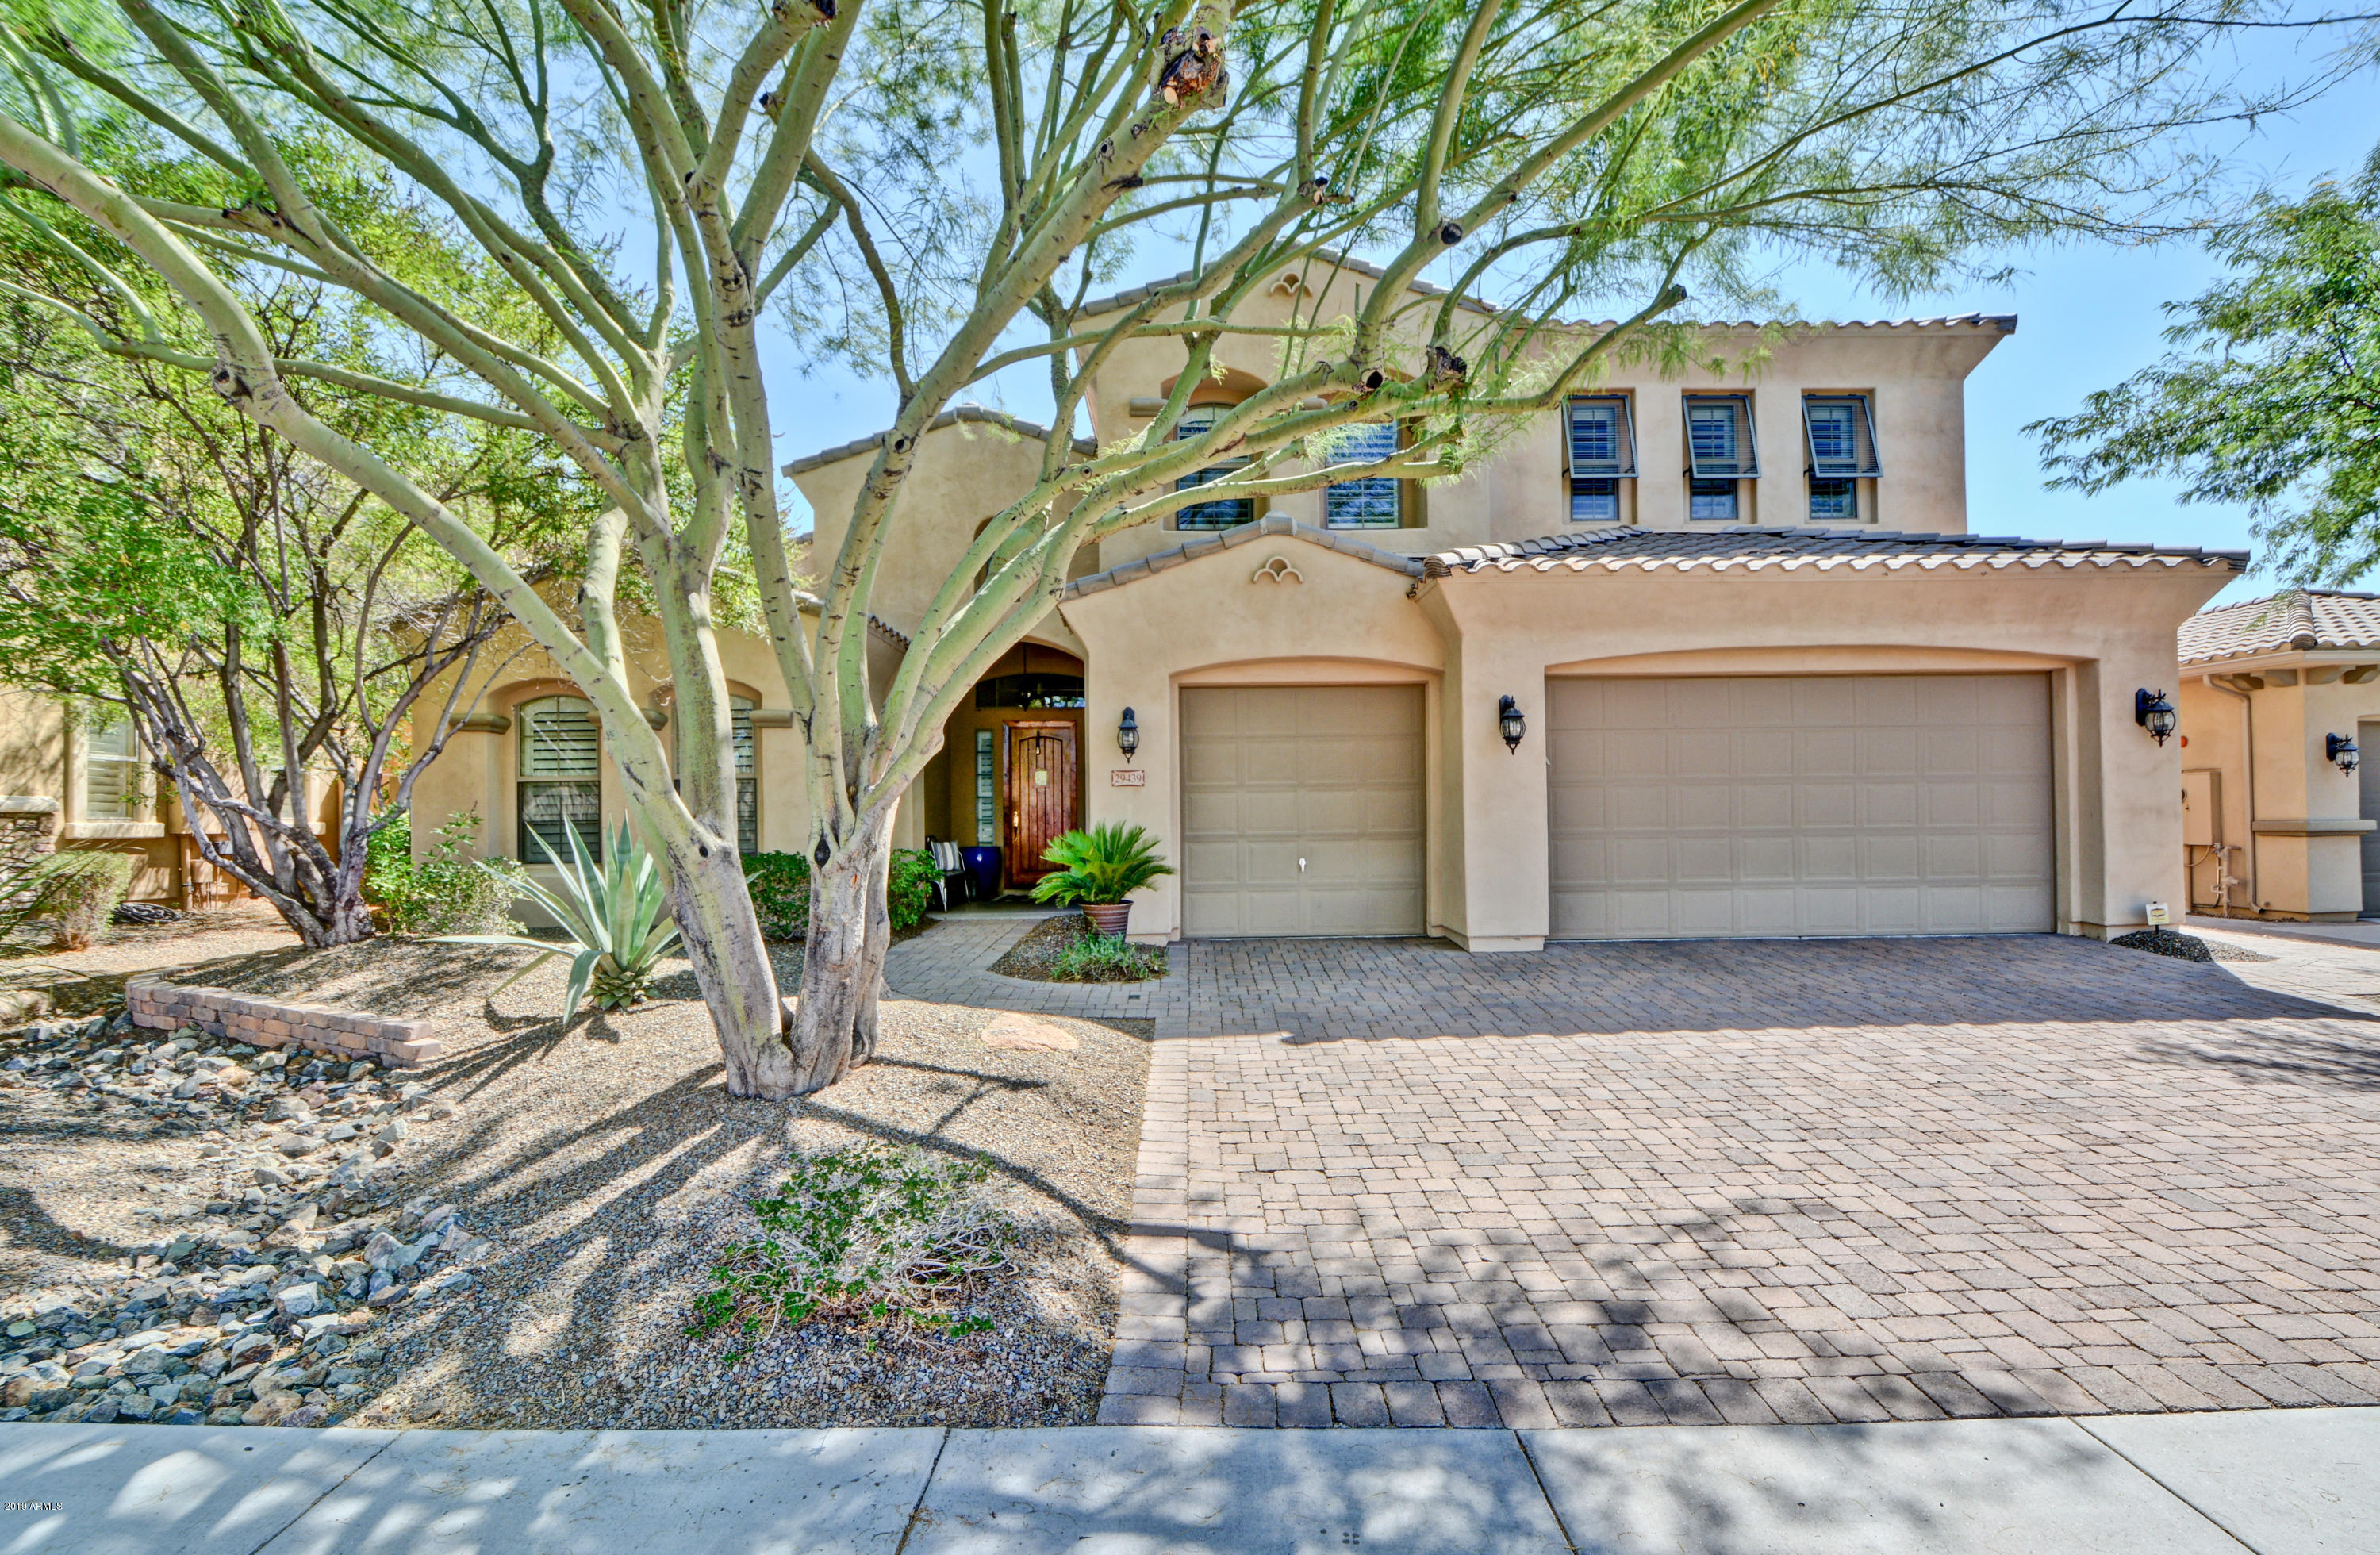 29439 N 122ND Drive, Vistancia in Maricopa County, AZ 85383 Home for Sale